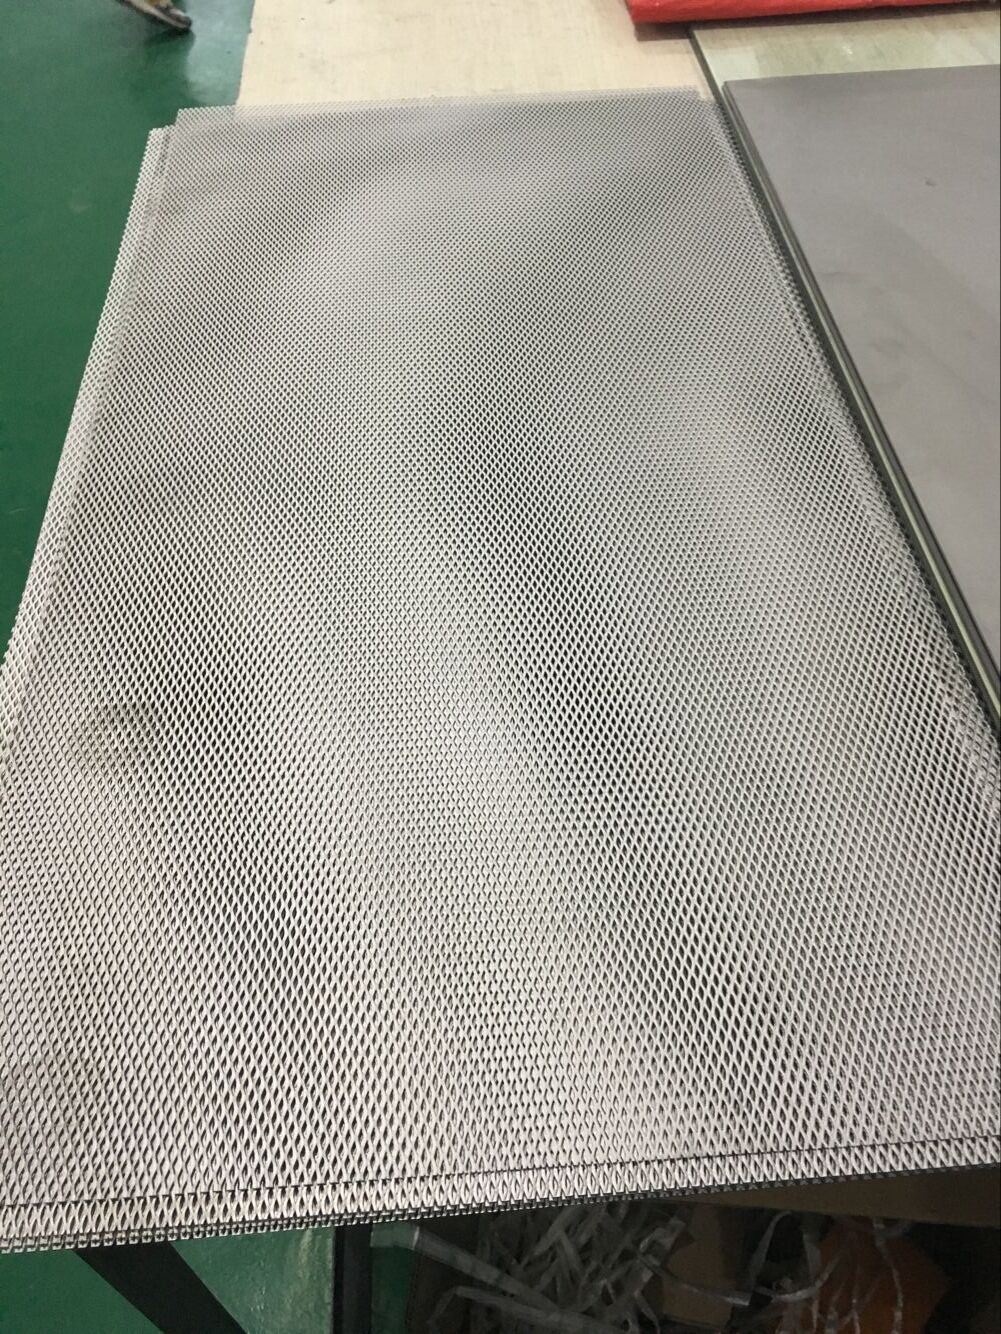 Export electroplateing aplication titanium mesh